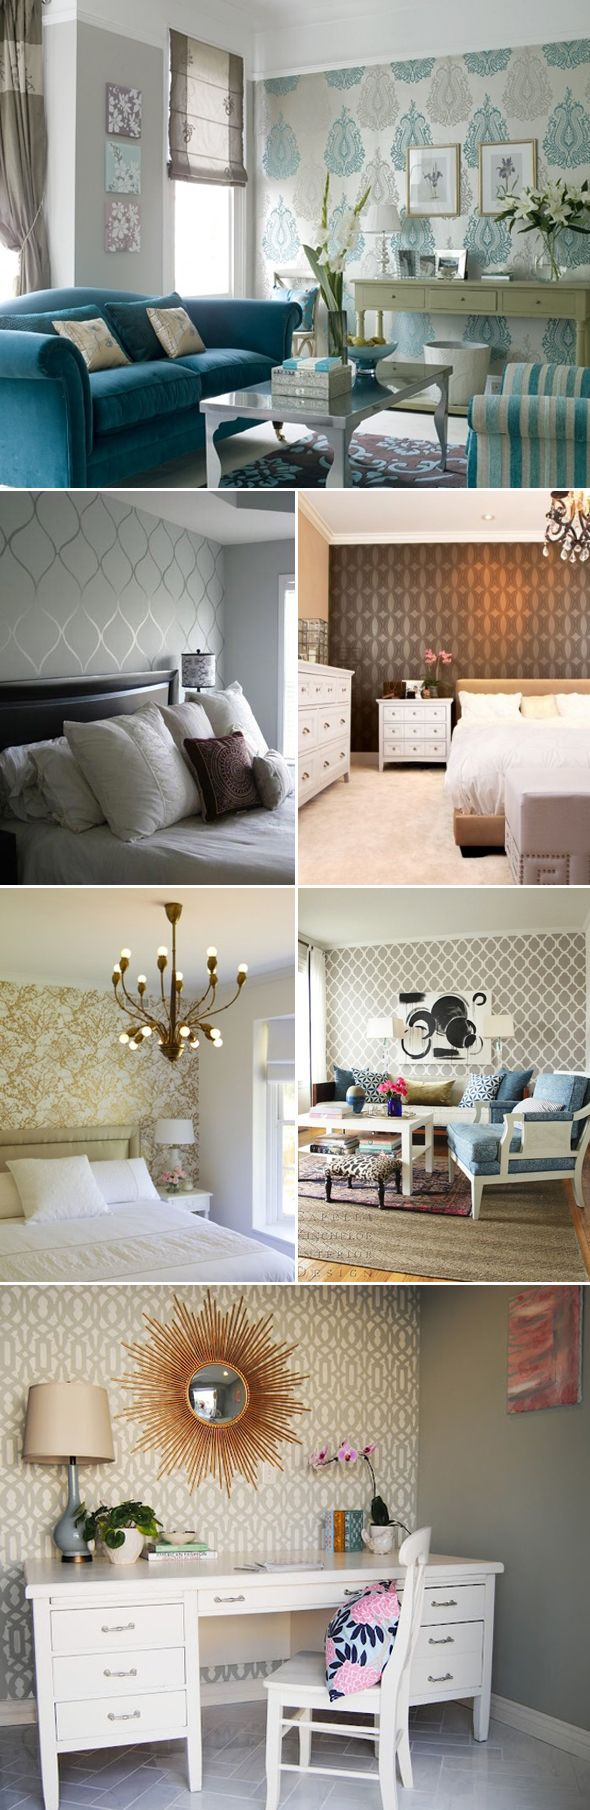 Wallpaper Accent Wall | The Style Umbrella - Inspiration for Stylish Living